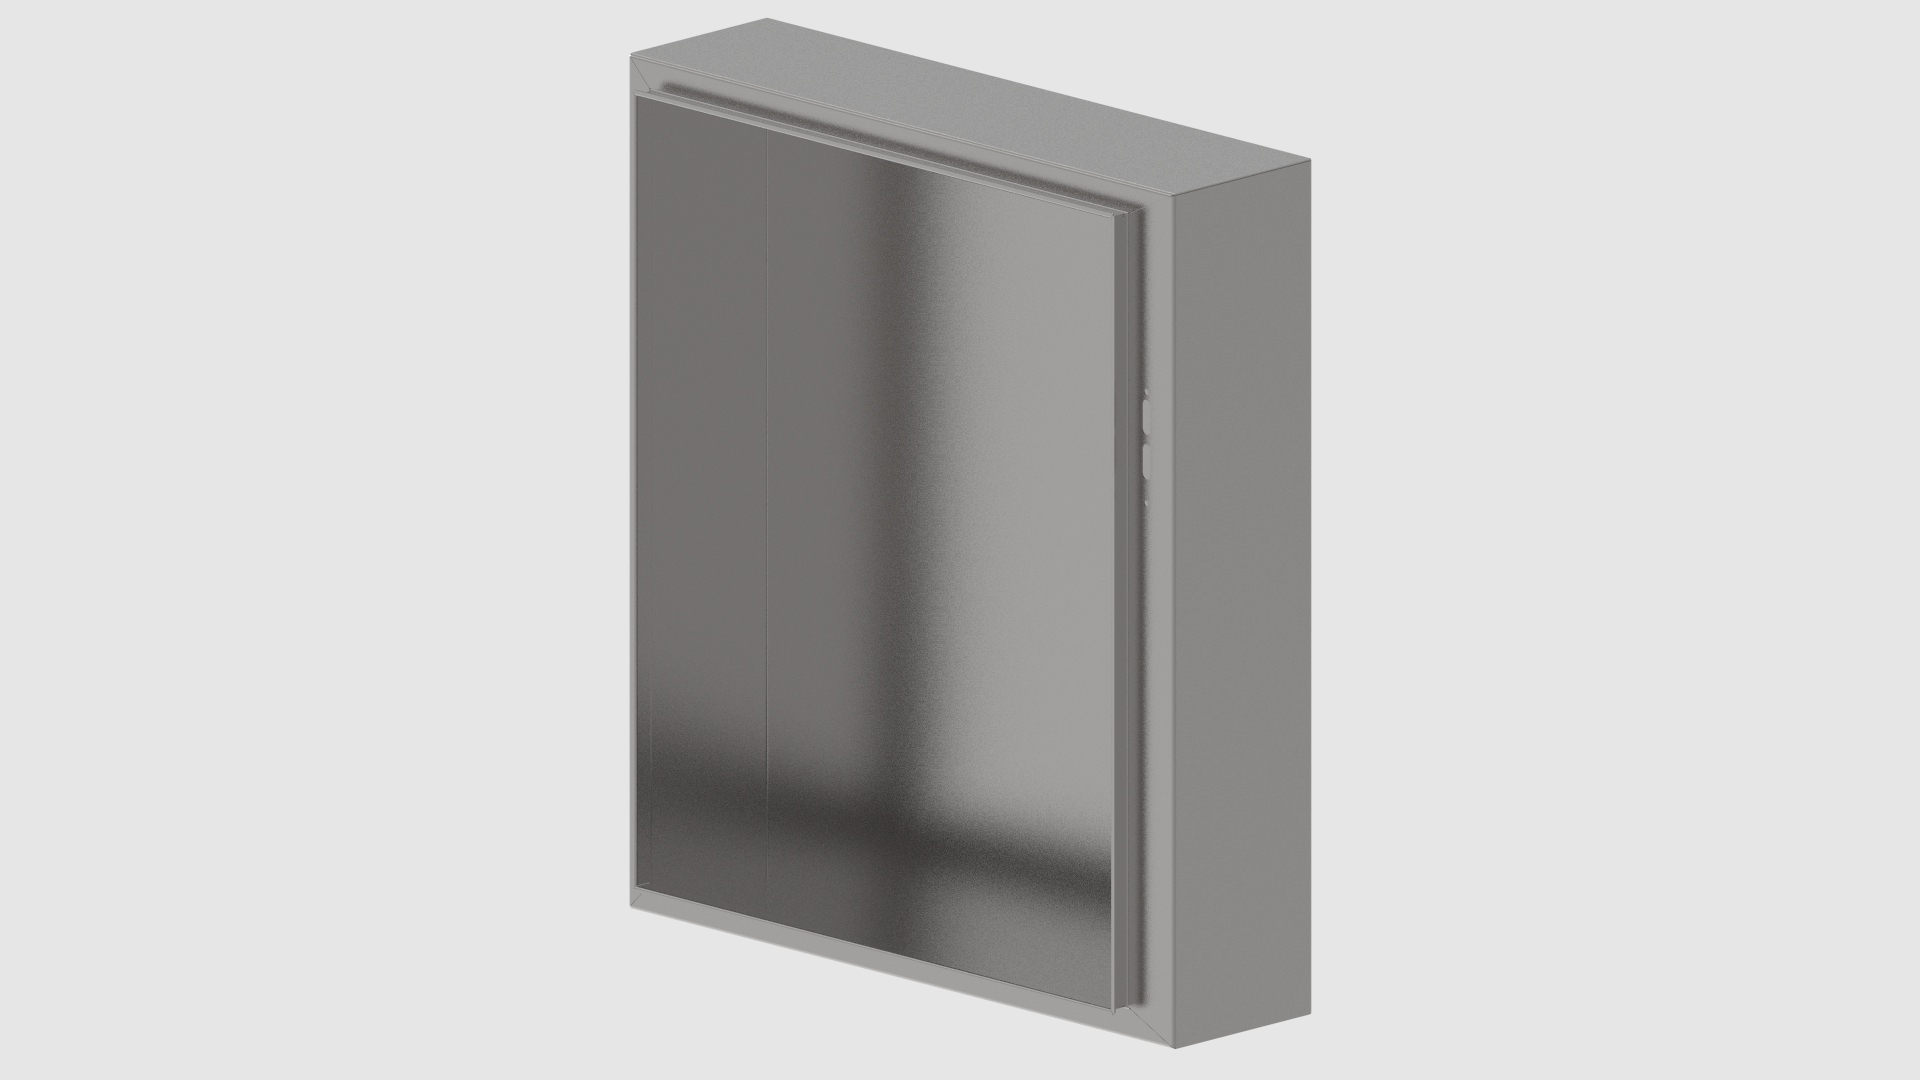 WEMO Picture of an Wall Mounted Electrical Enclosure product.jpg